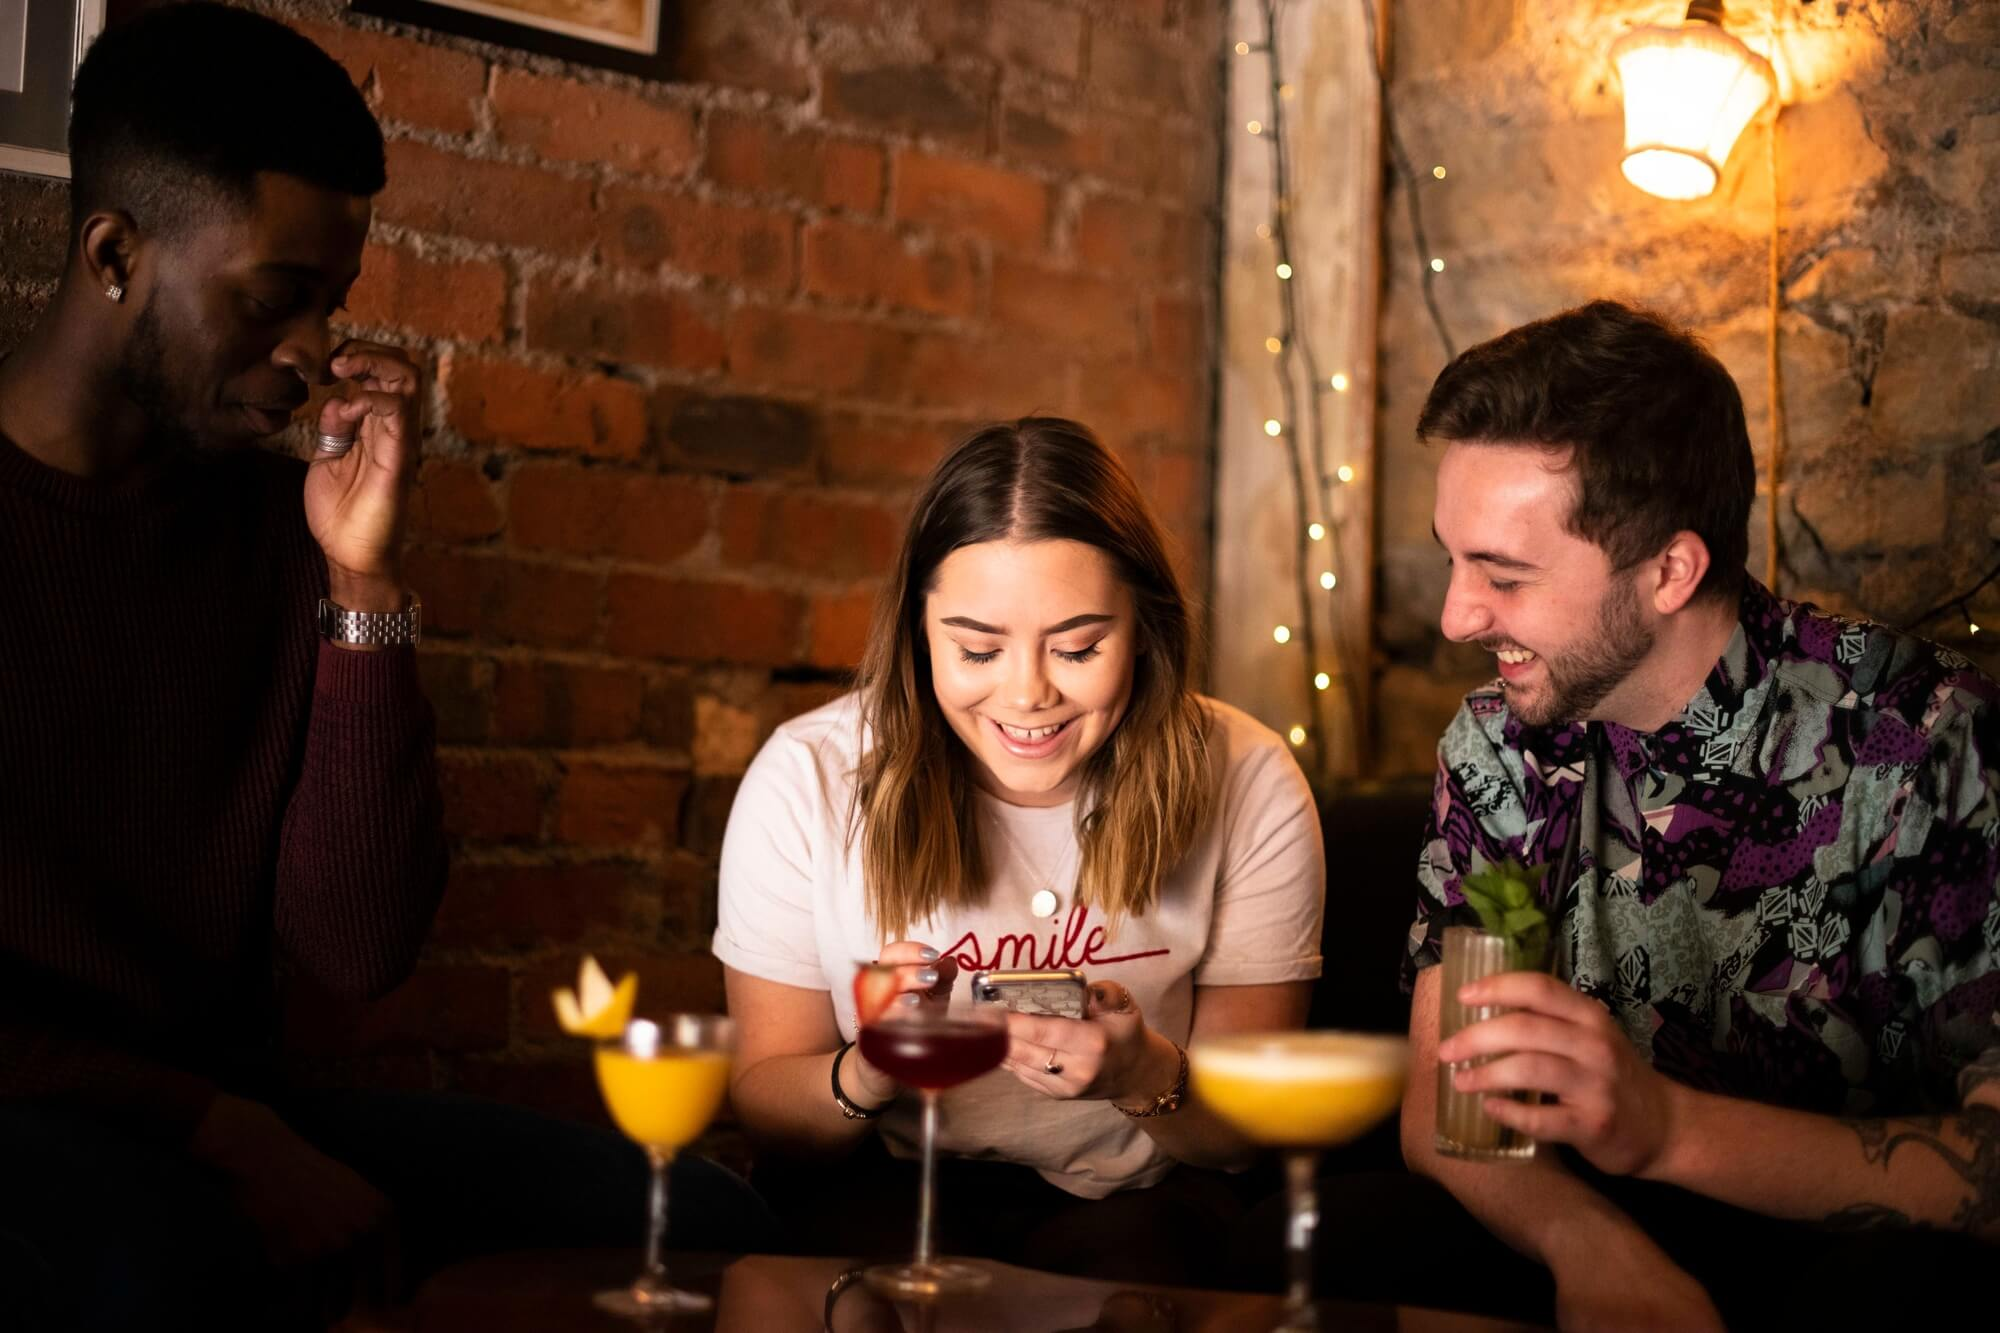 Three University of Derby students sit in bar drinking cocktails laughing in each others company